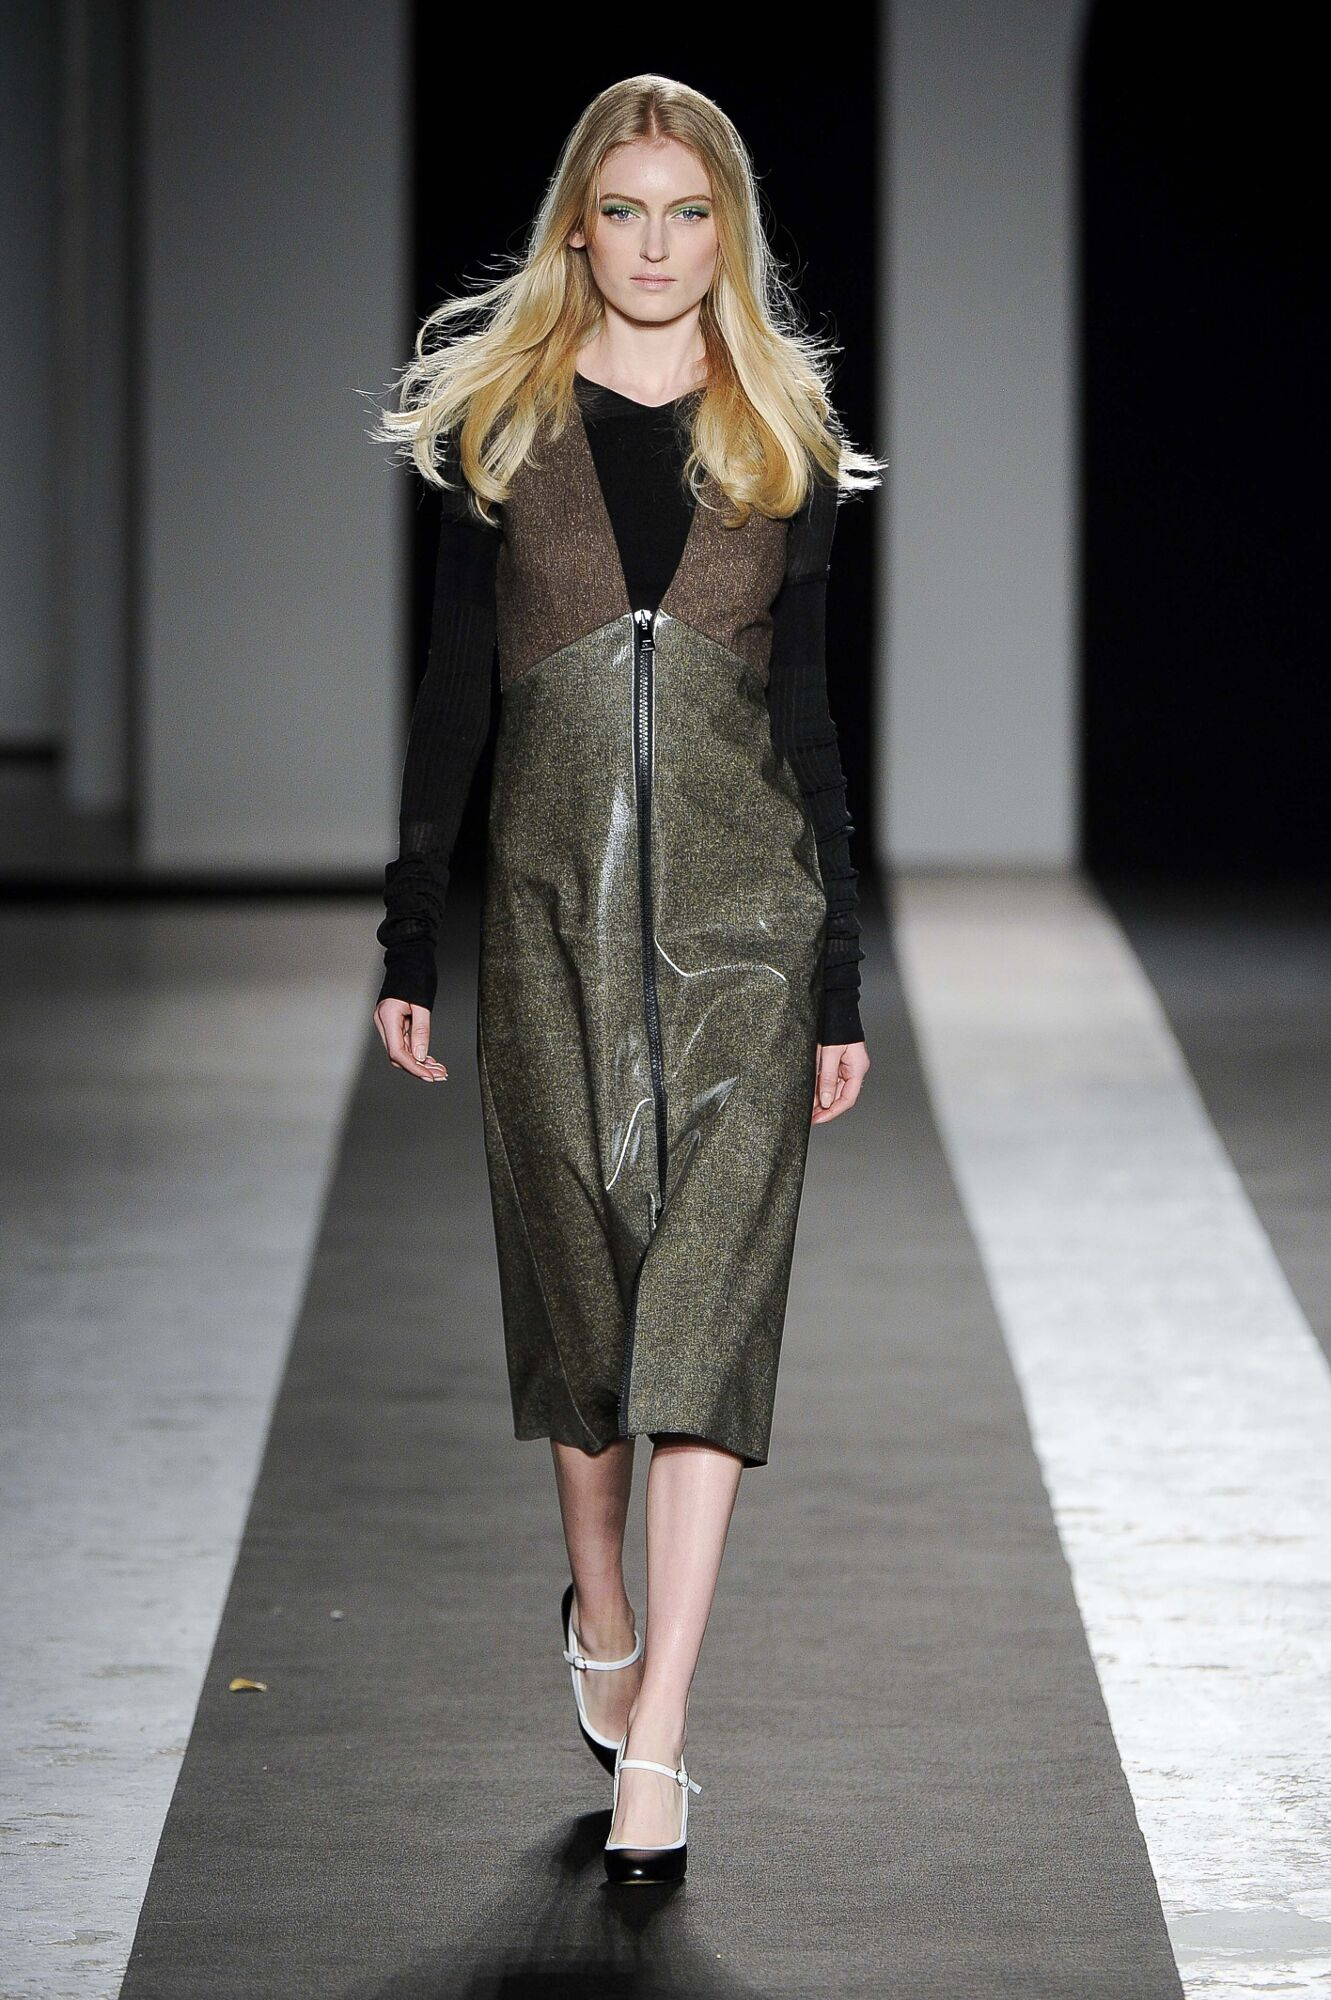 ANDREA INCONTRI FALL WINTER 2014-15 WOMEN'S COLLECTION | The ...